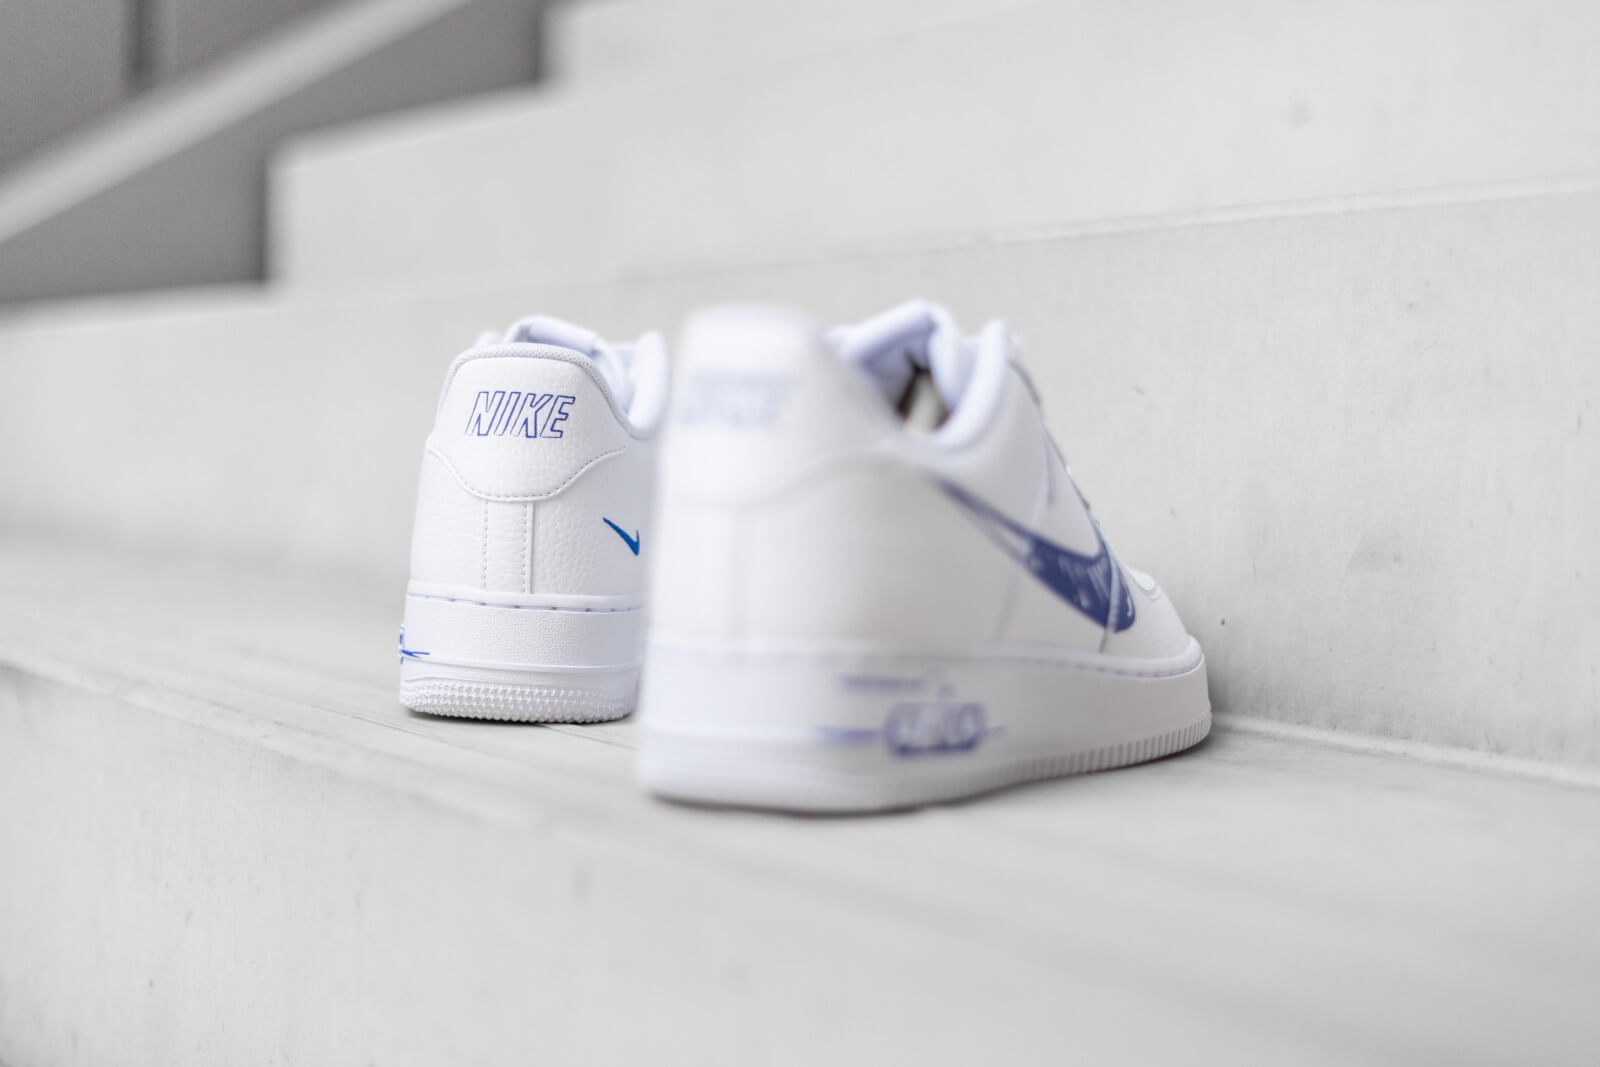 Nike Air Force 1 LV8 Utility Sketch White/Racer Blue